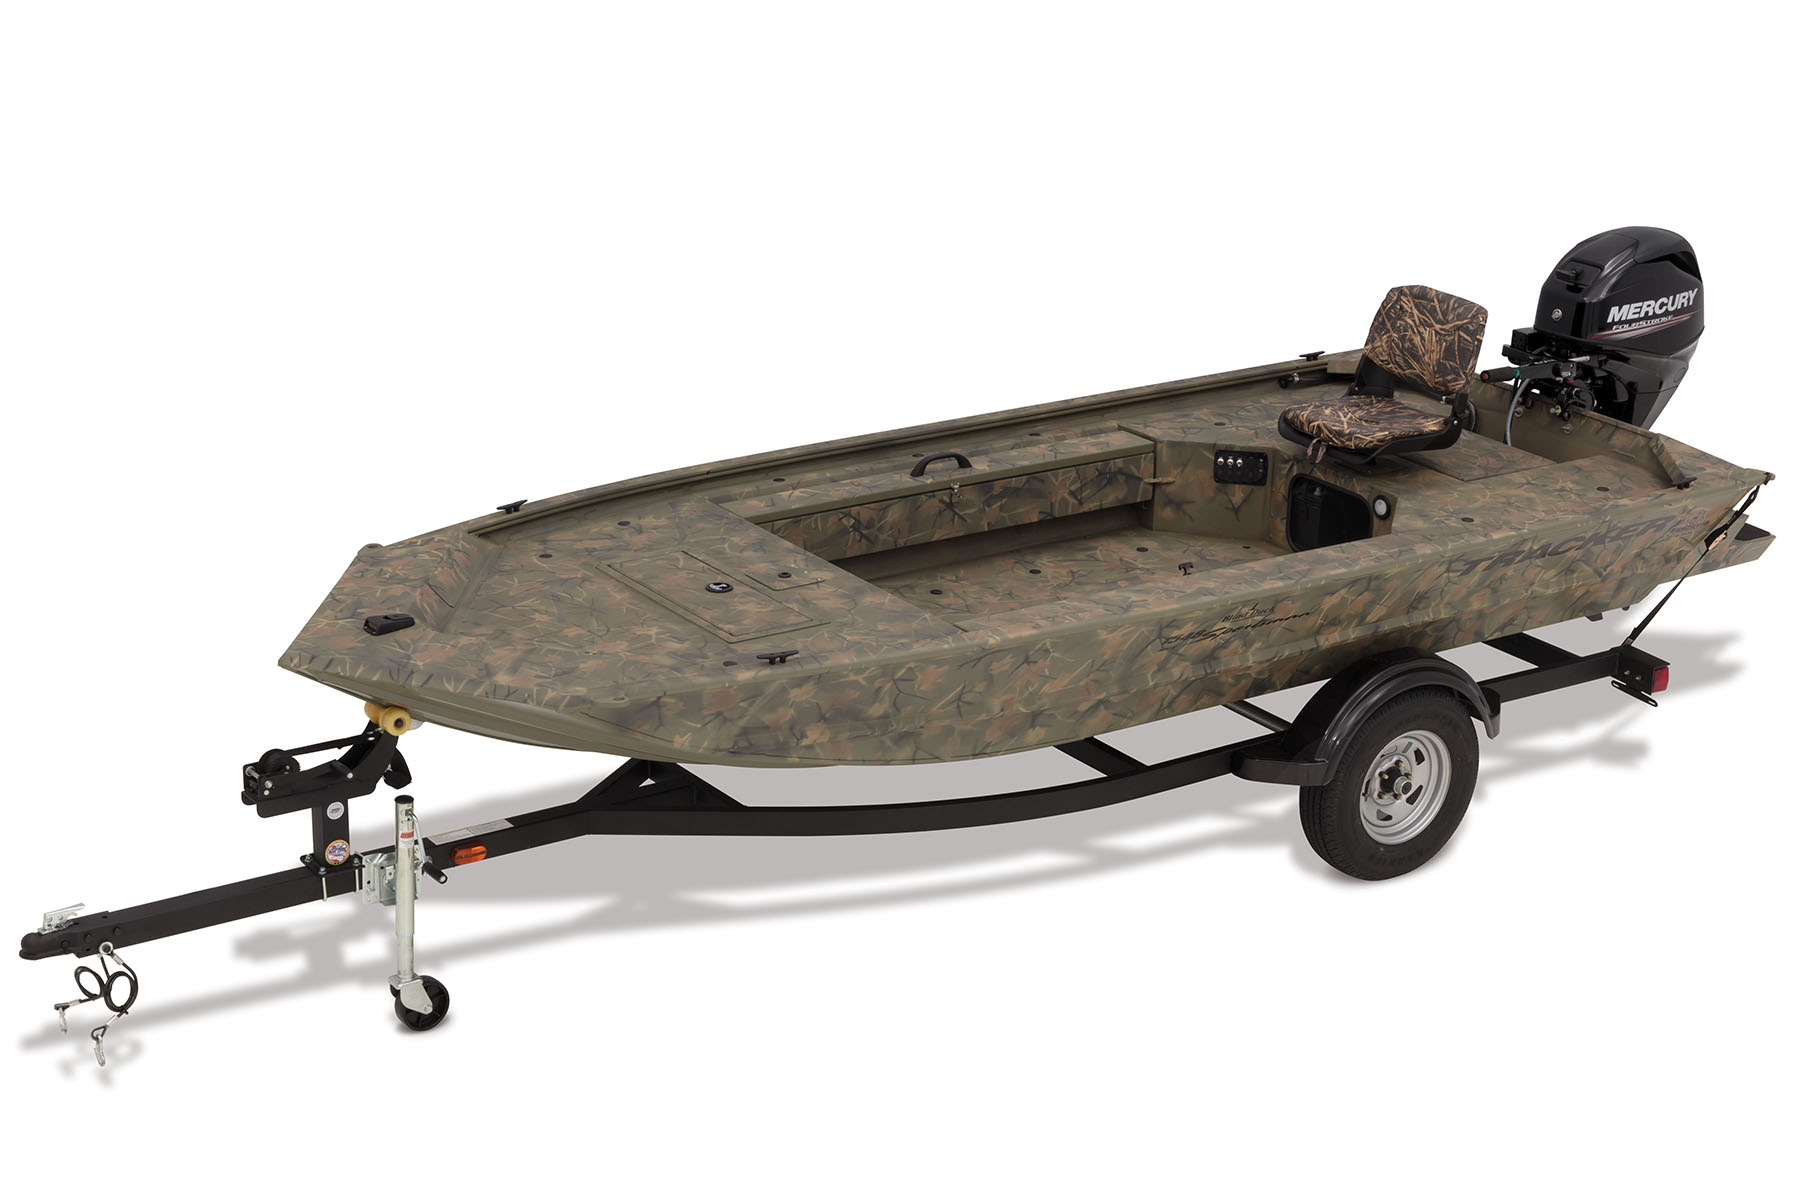 GRIZZLY 1548 T Sportsman -